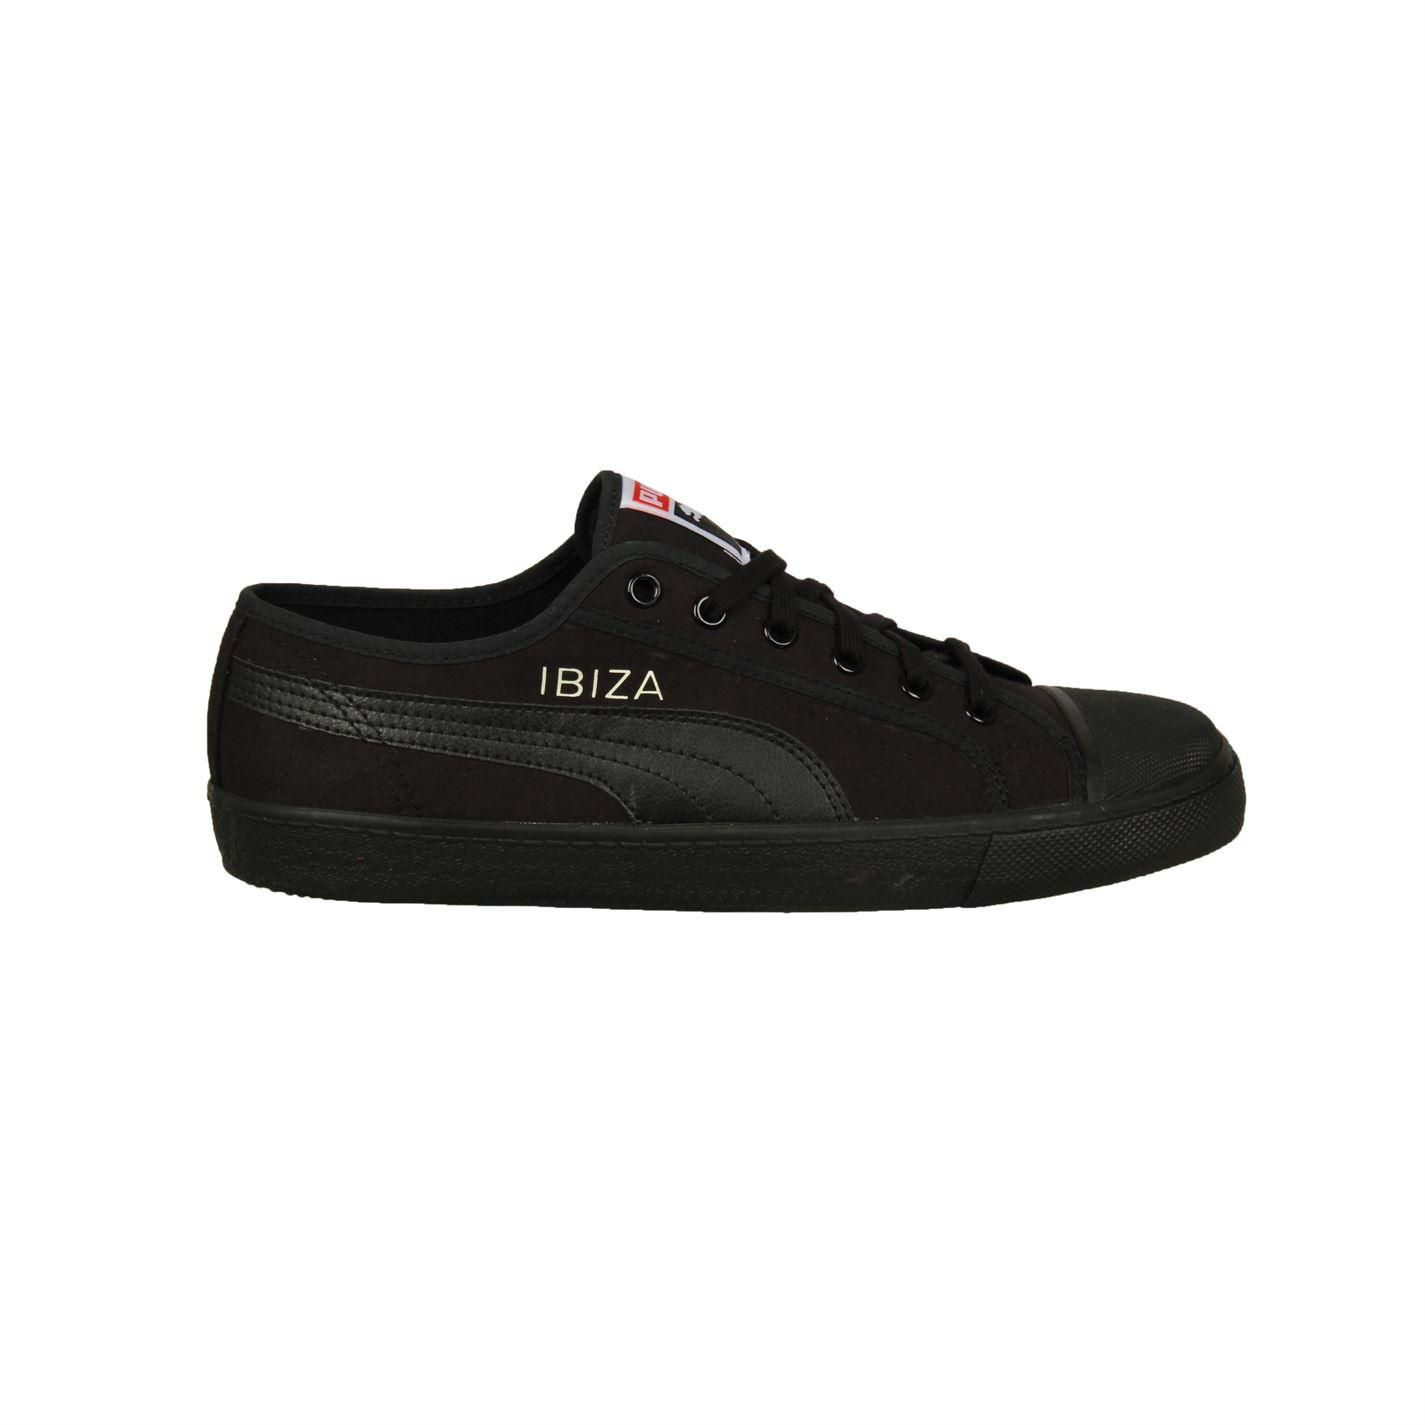 Puma Ibiza NM1 Canvas Unisex Trainers (127034-12703403)